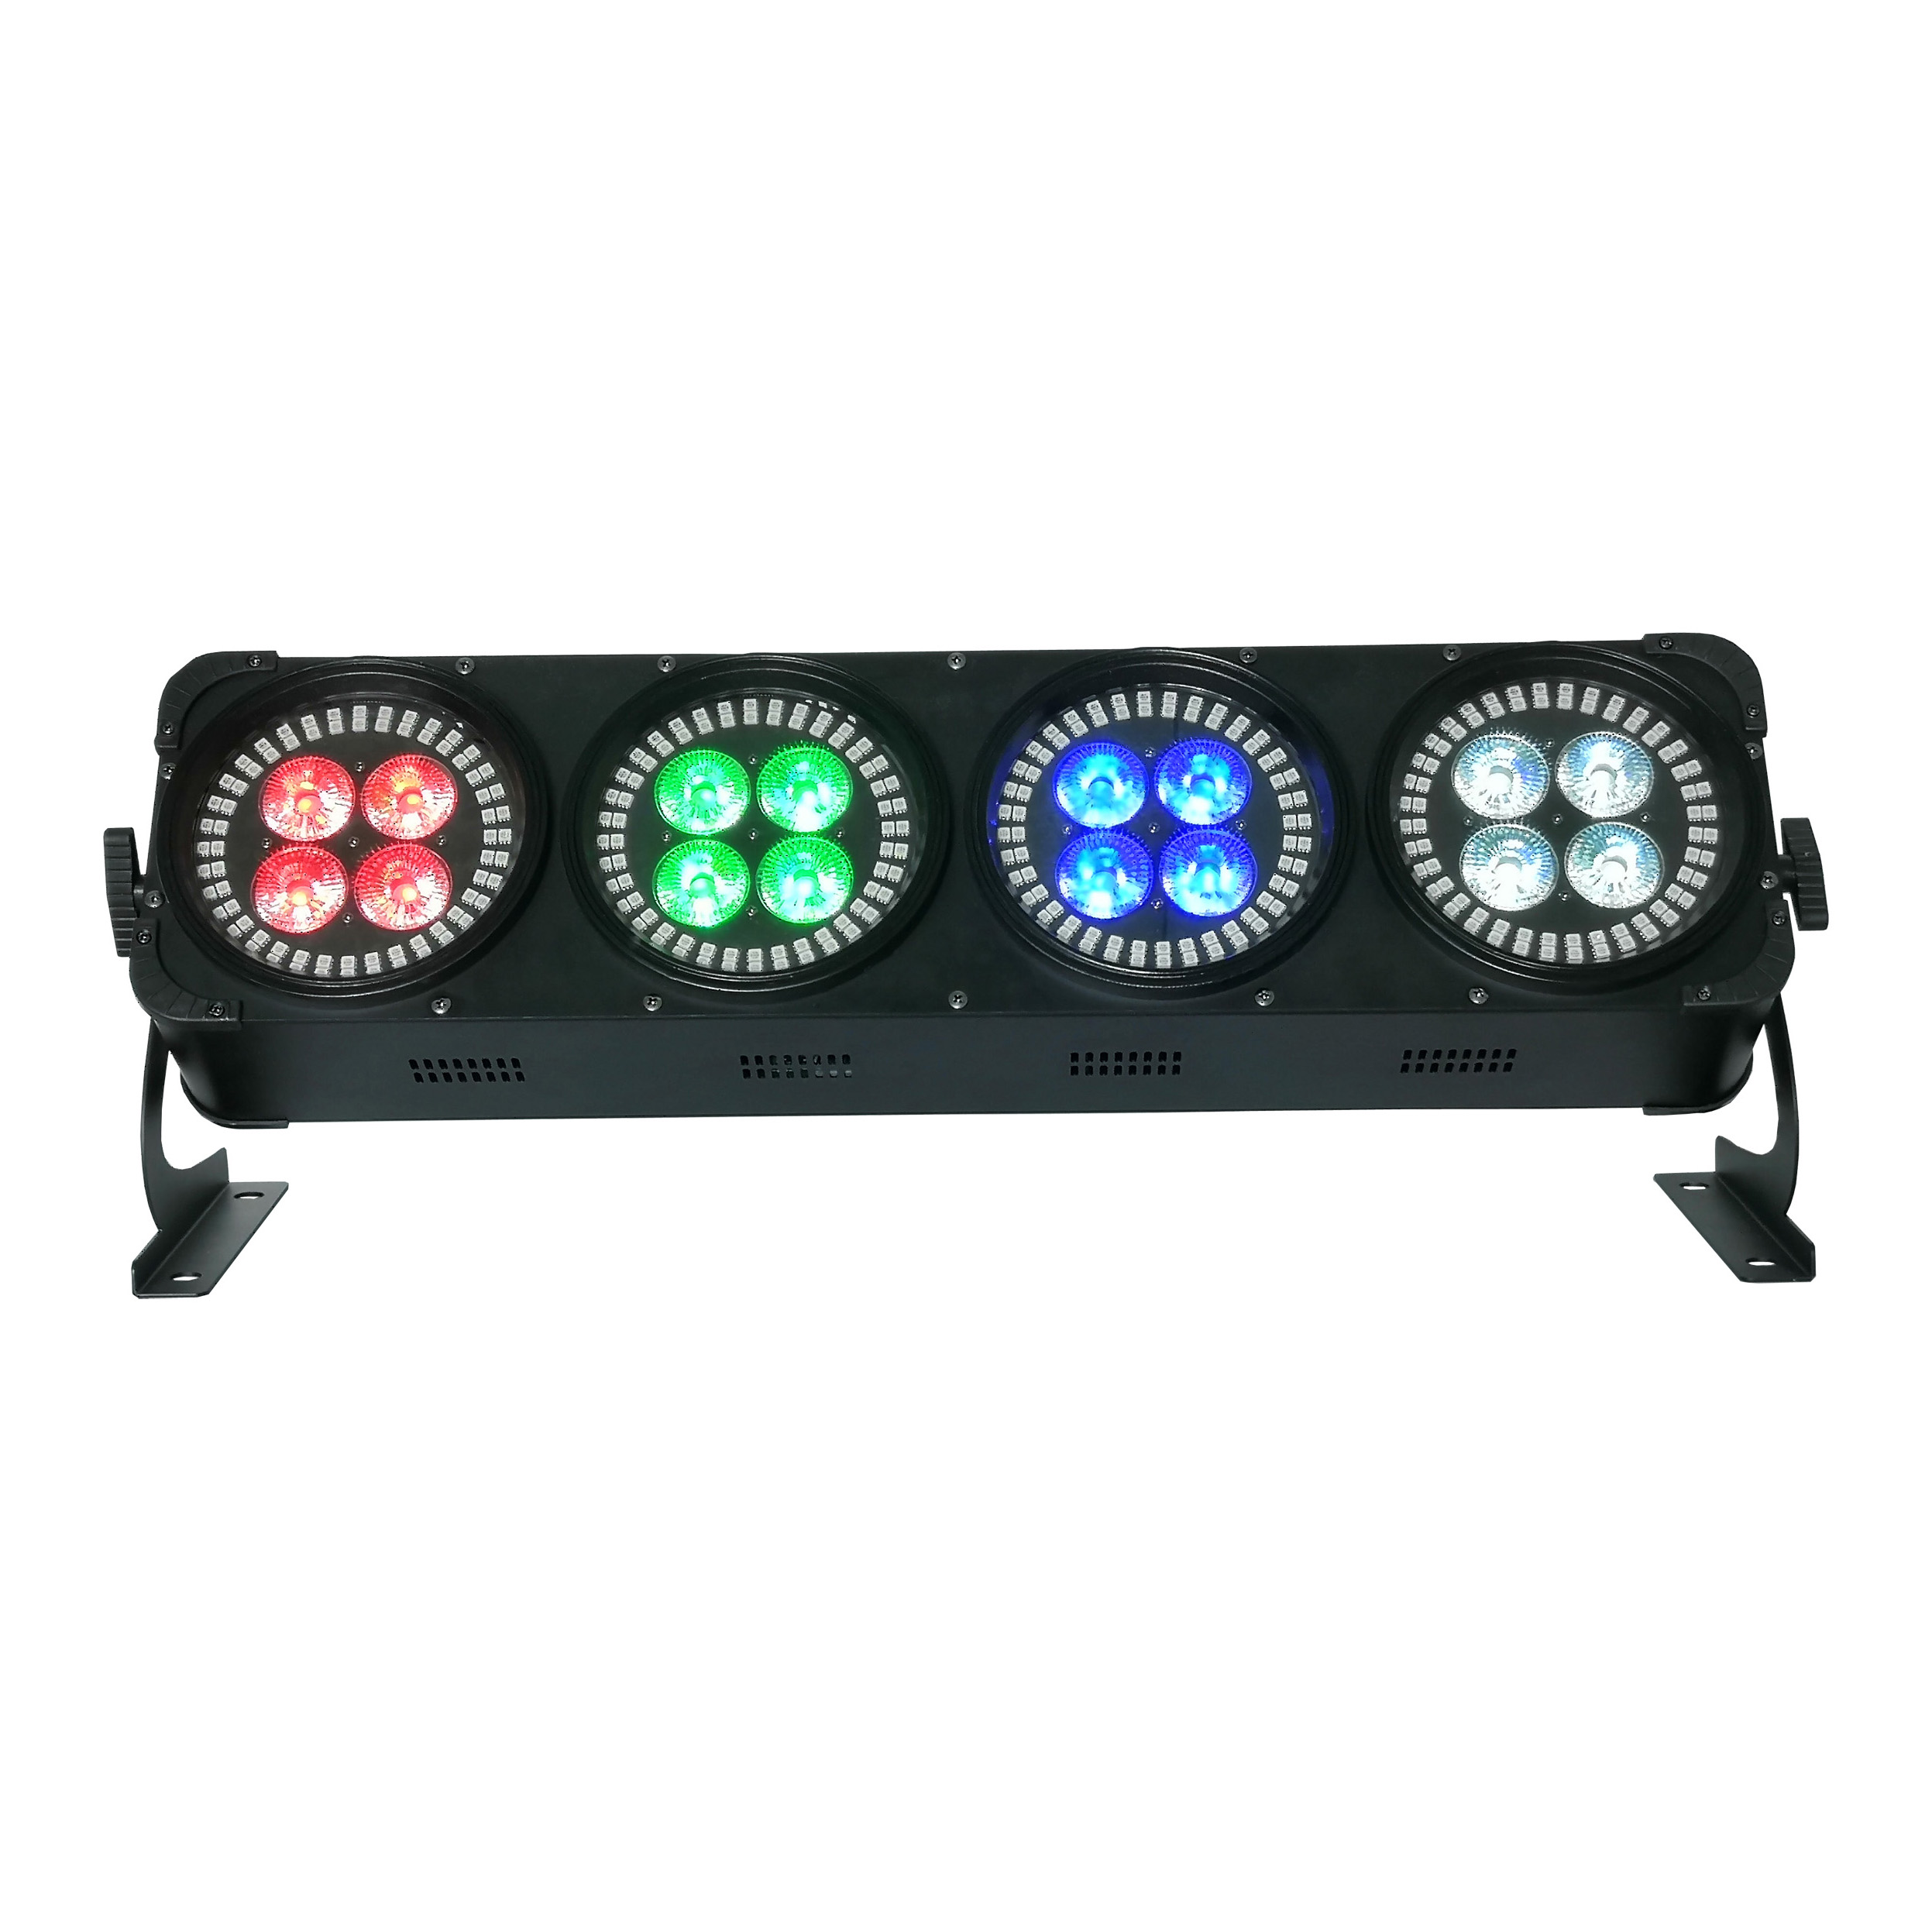 BY-6316A 4 Heads 16X12W 6in1 LED+288X0.2W RGB 3in1 LED Wash Light